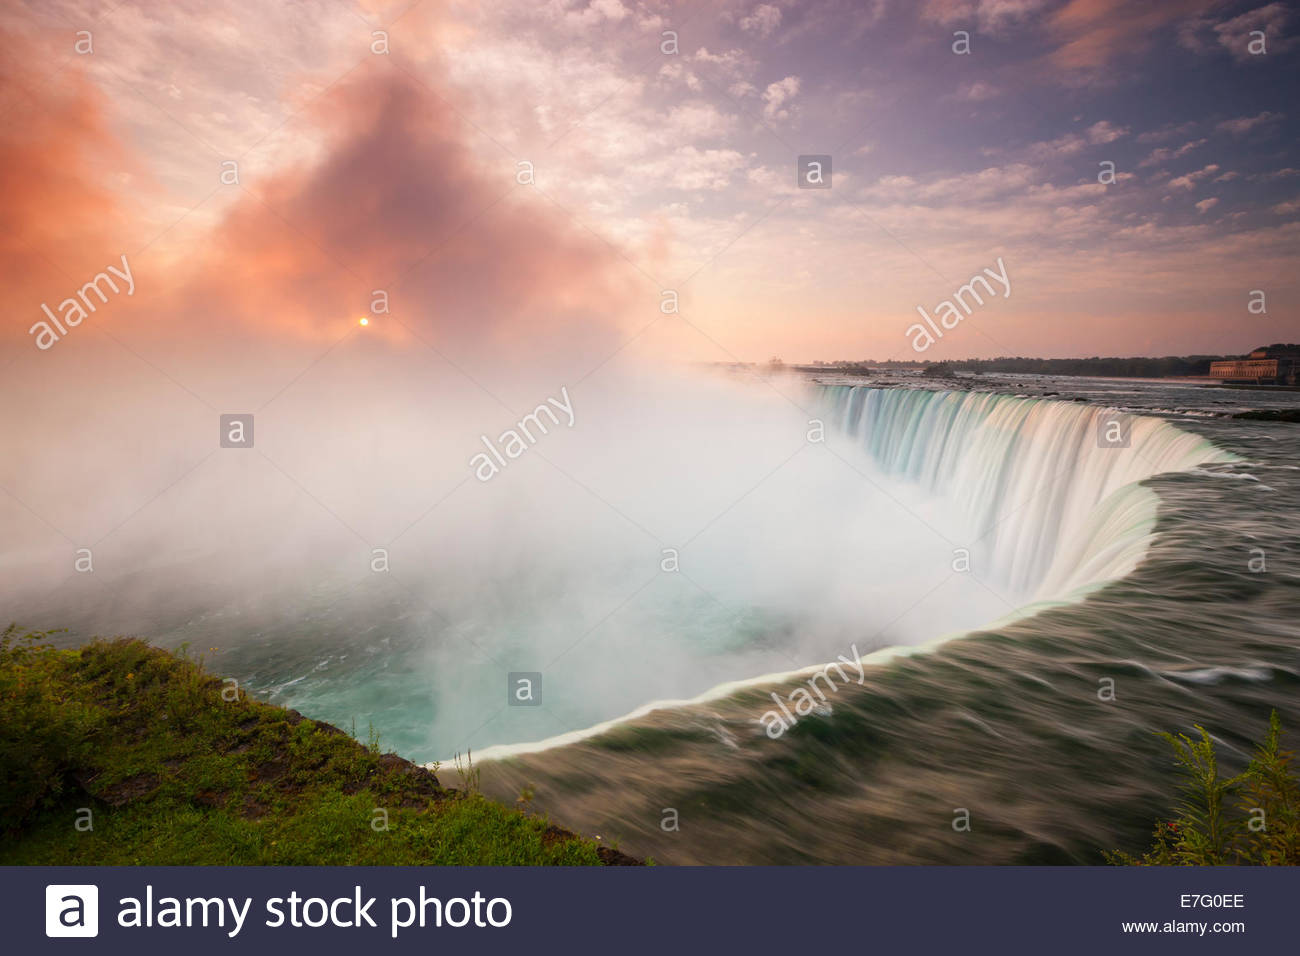 The rising sun shines through the thick mist generated by the force of Horseshoe Falls, one of the Niagara Falls - Stock Image